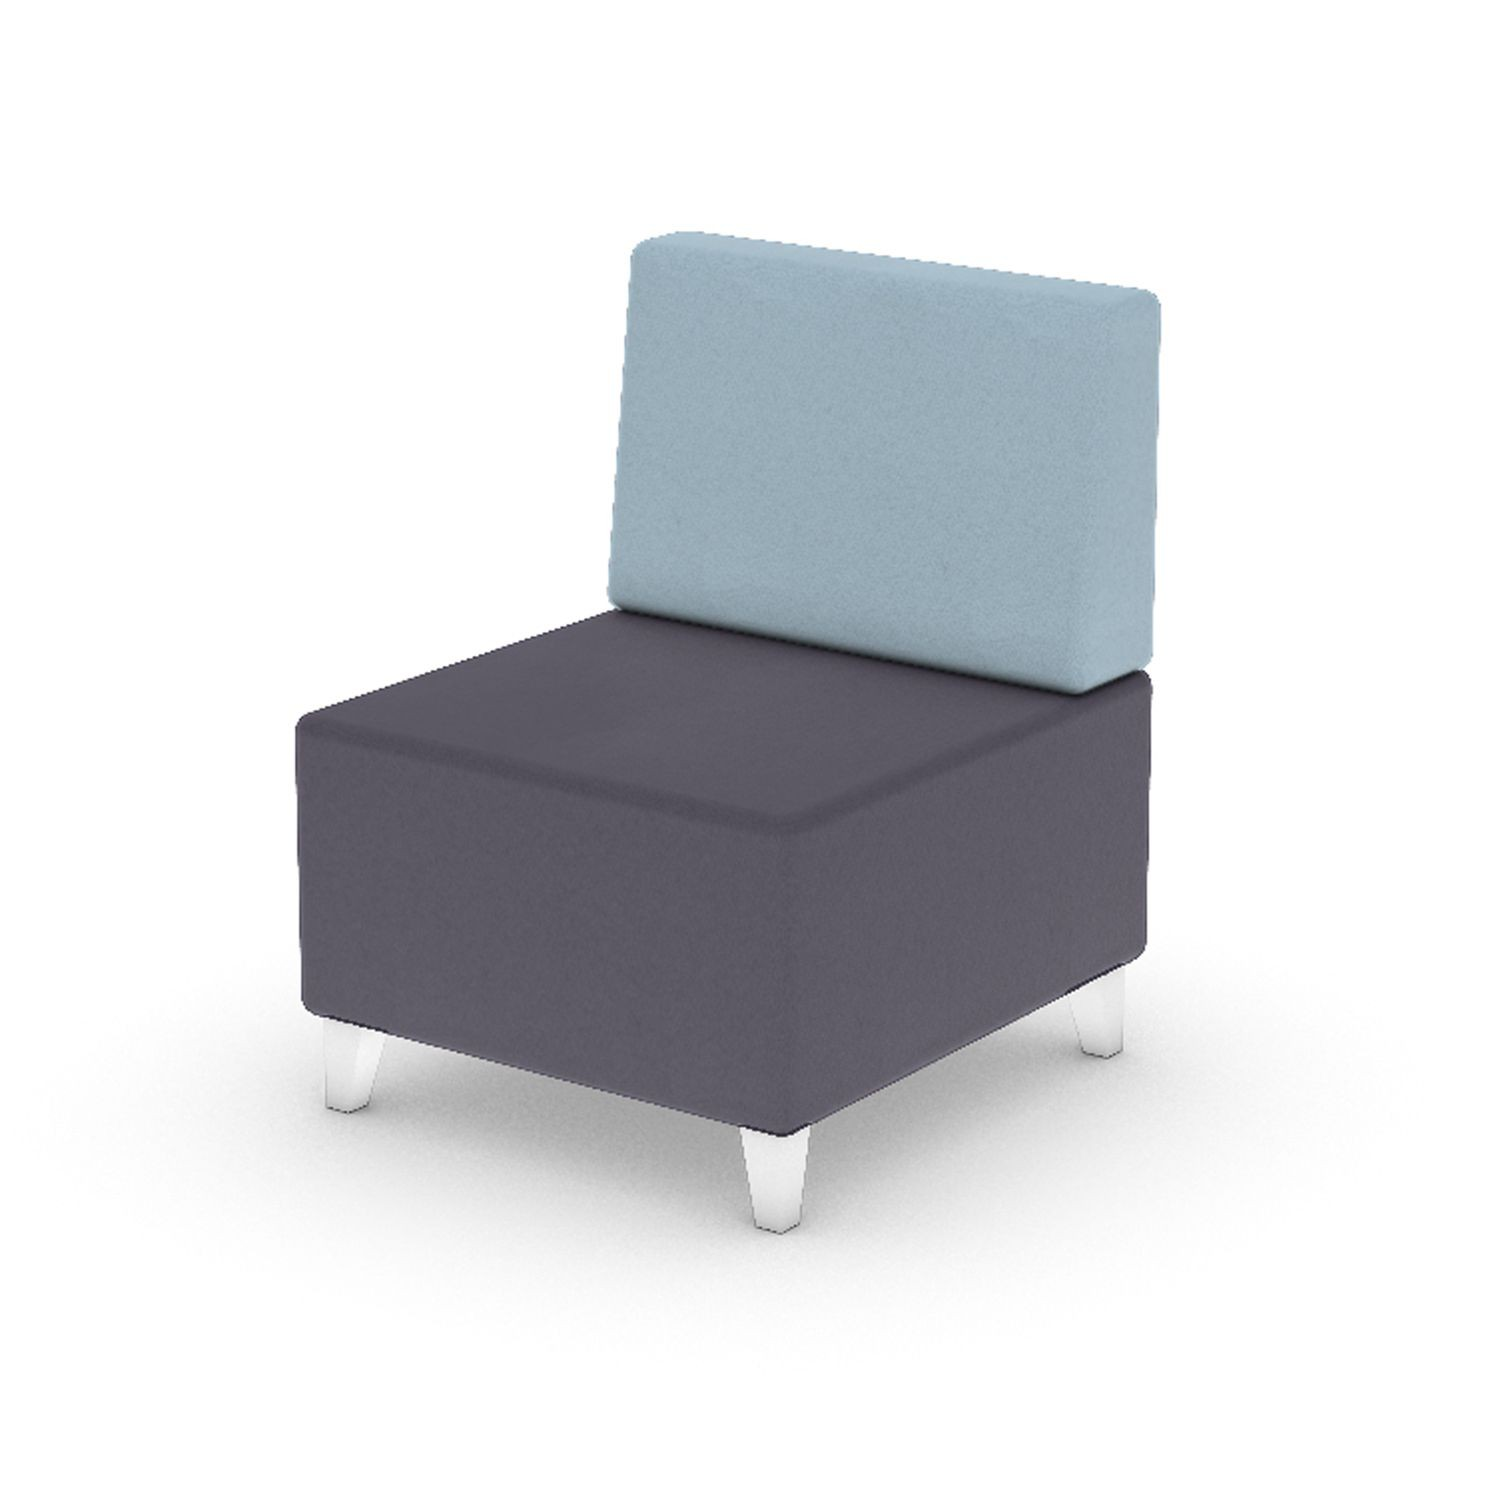 Small Stool Chair Soft Seating Rapid Small Stool Jk Office Furniture